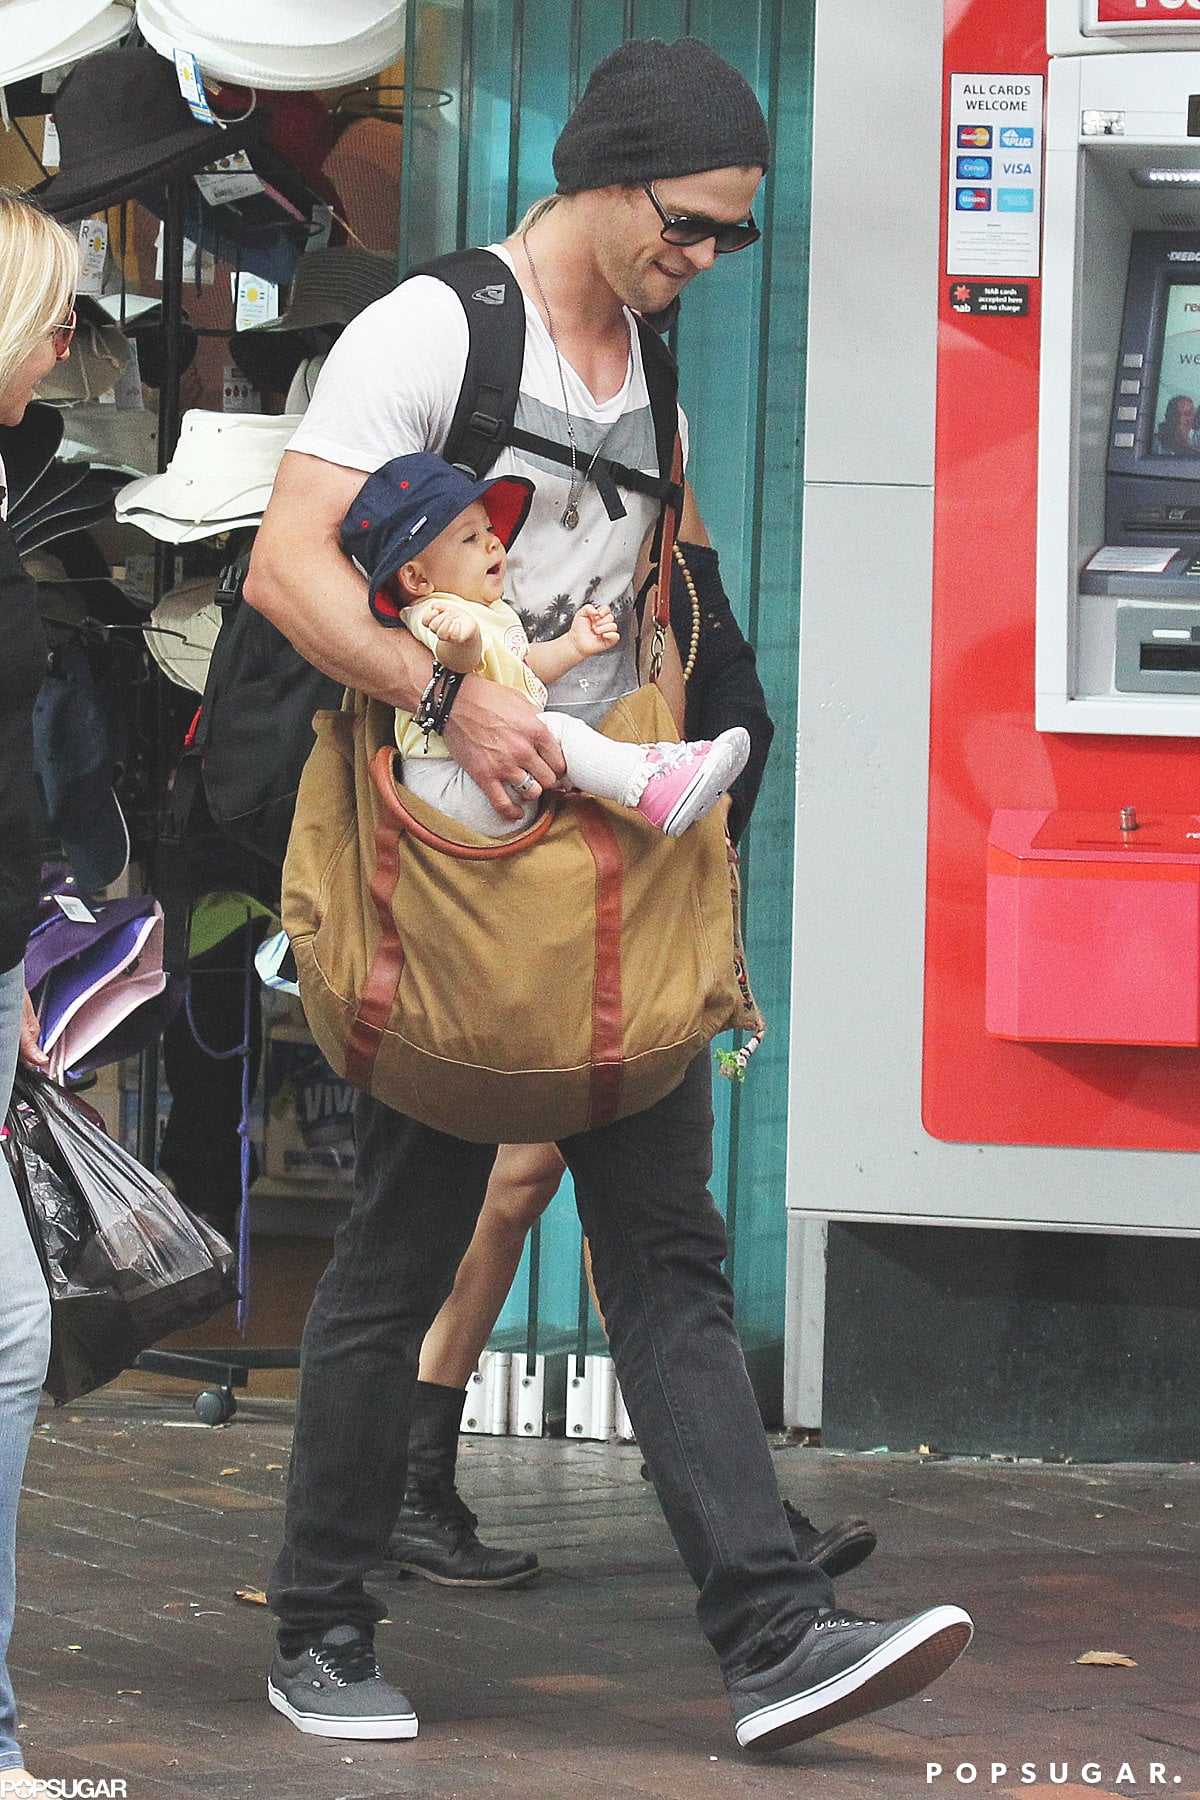 Chris Hemsworth held his baby daughter, India Hemsworth.